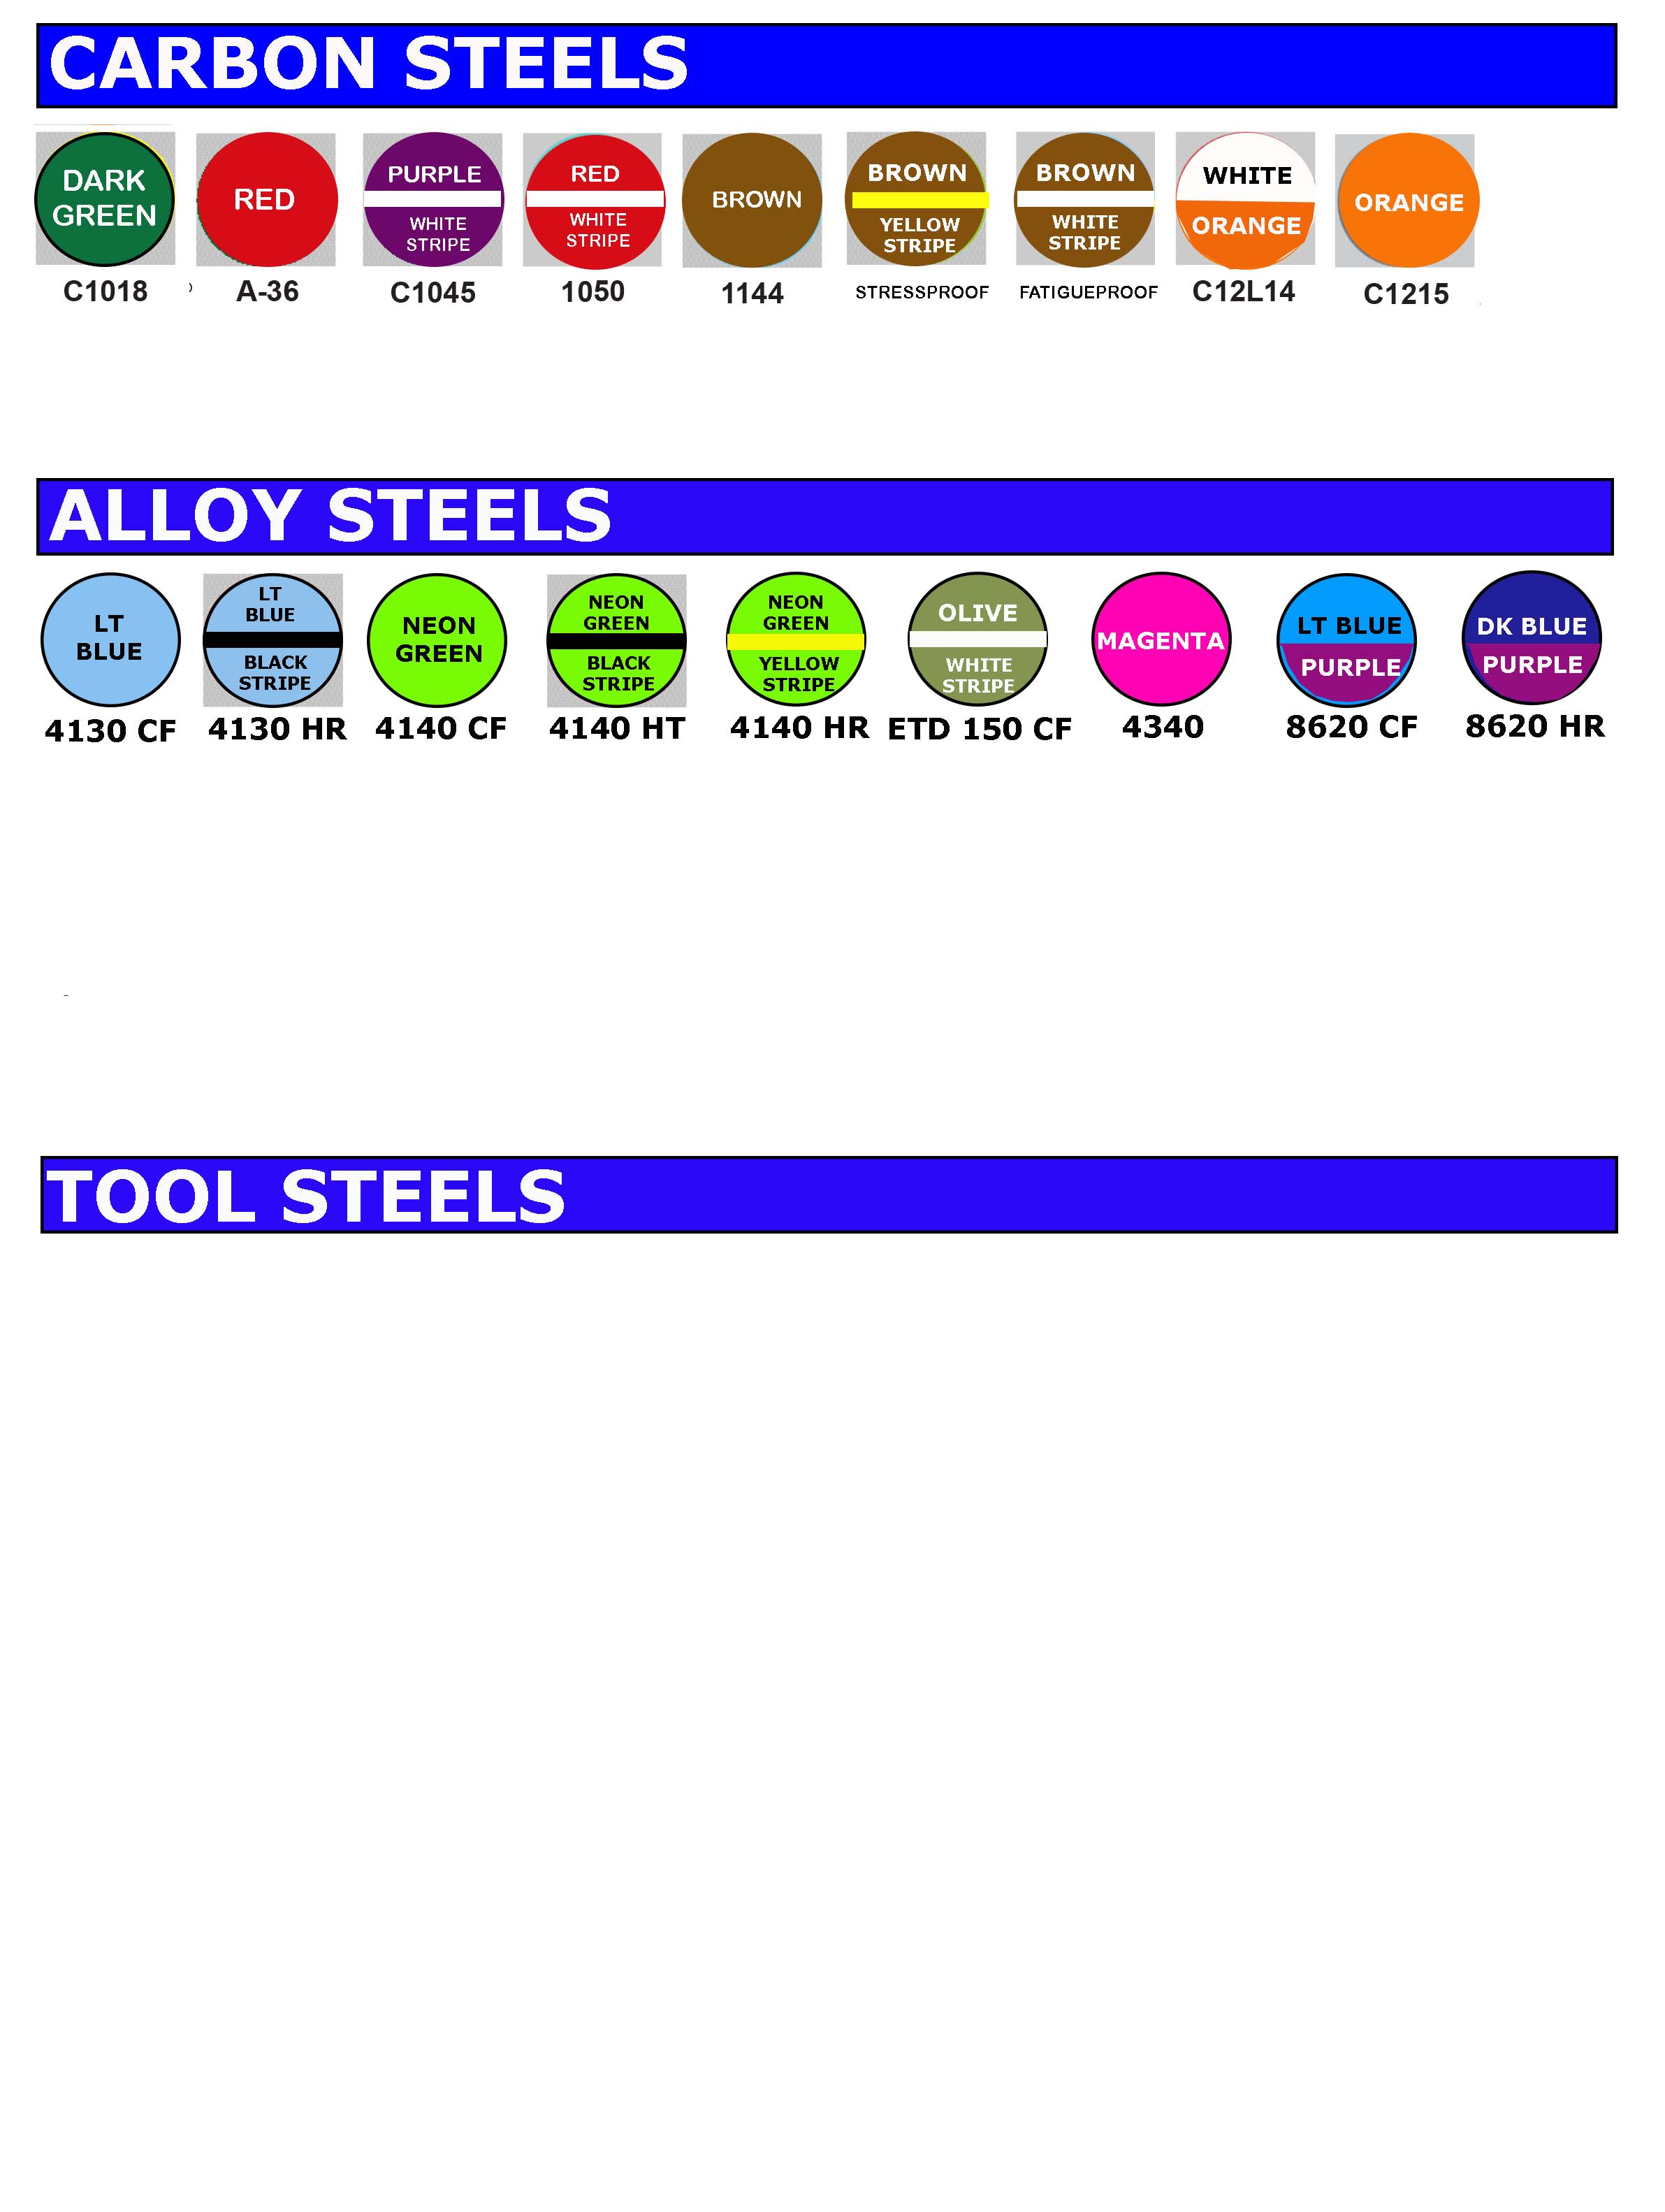 color-codes-steel-3-20-19.jpg